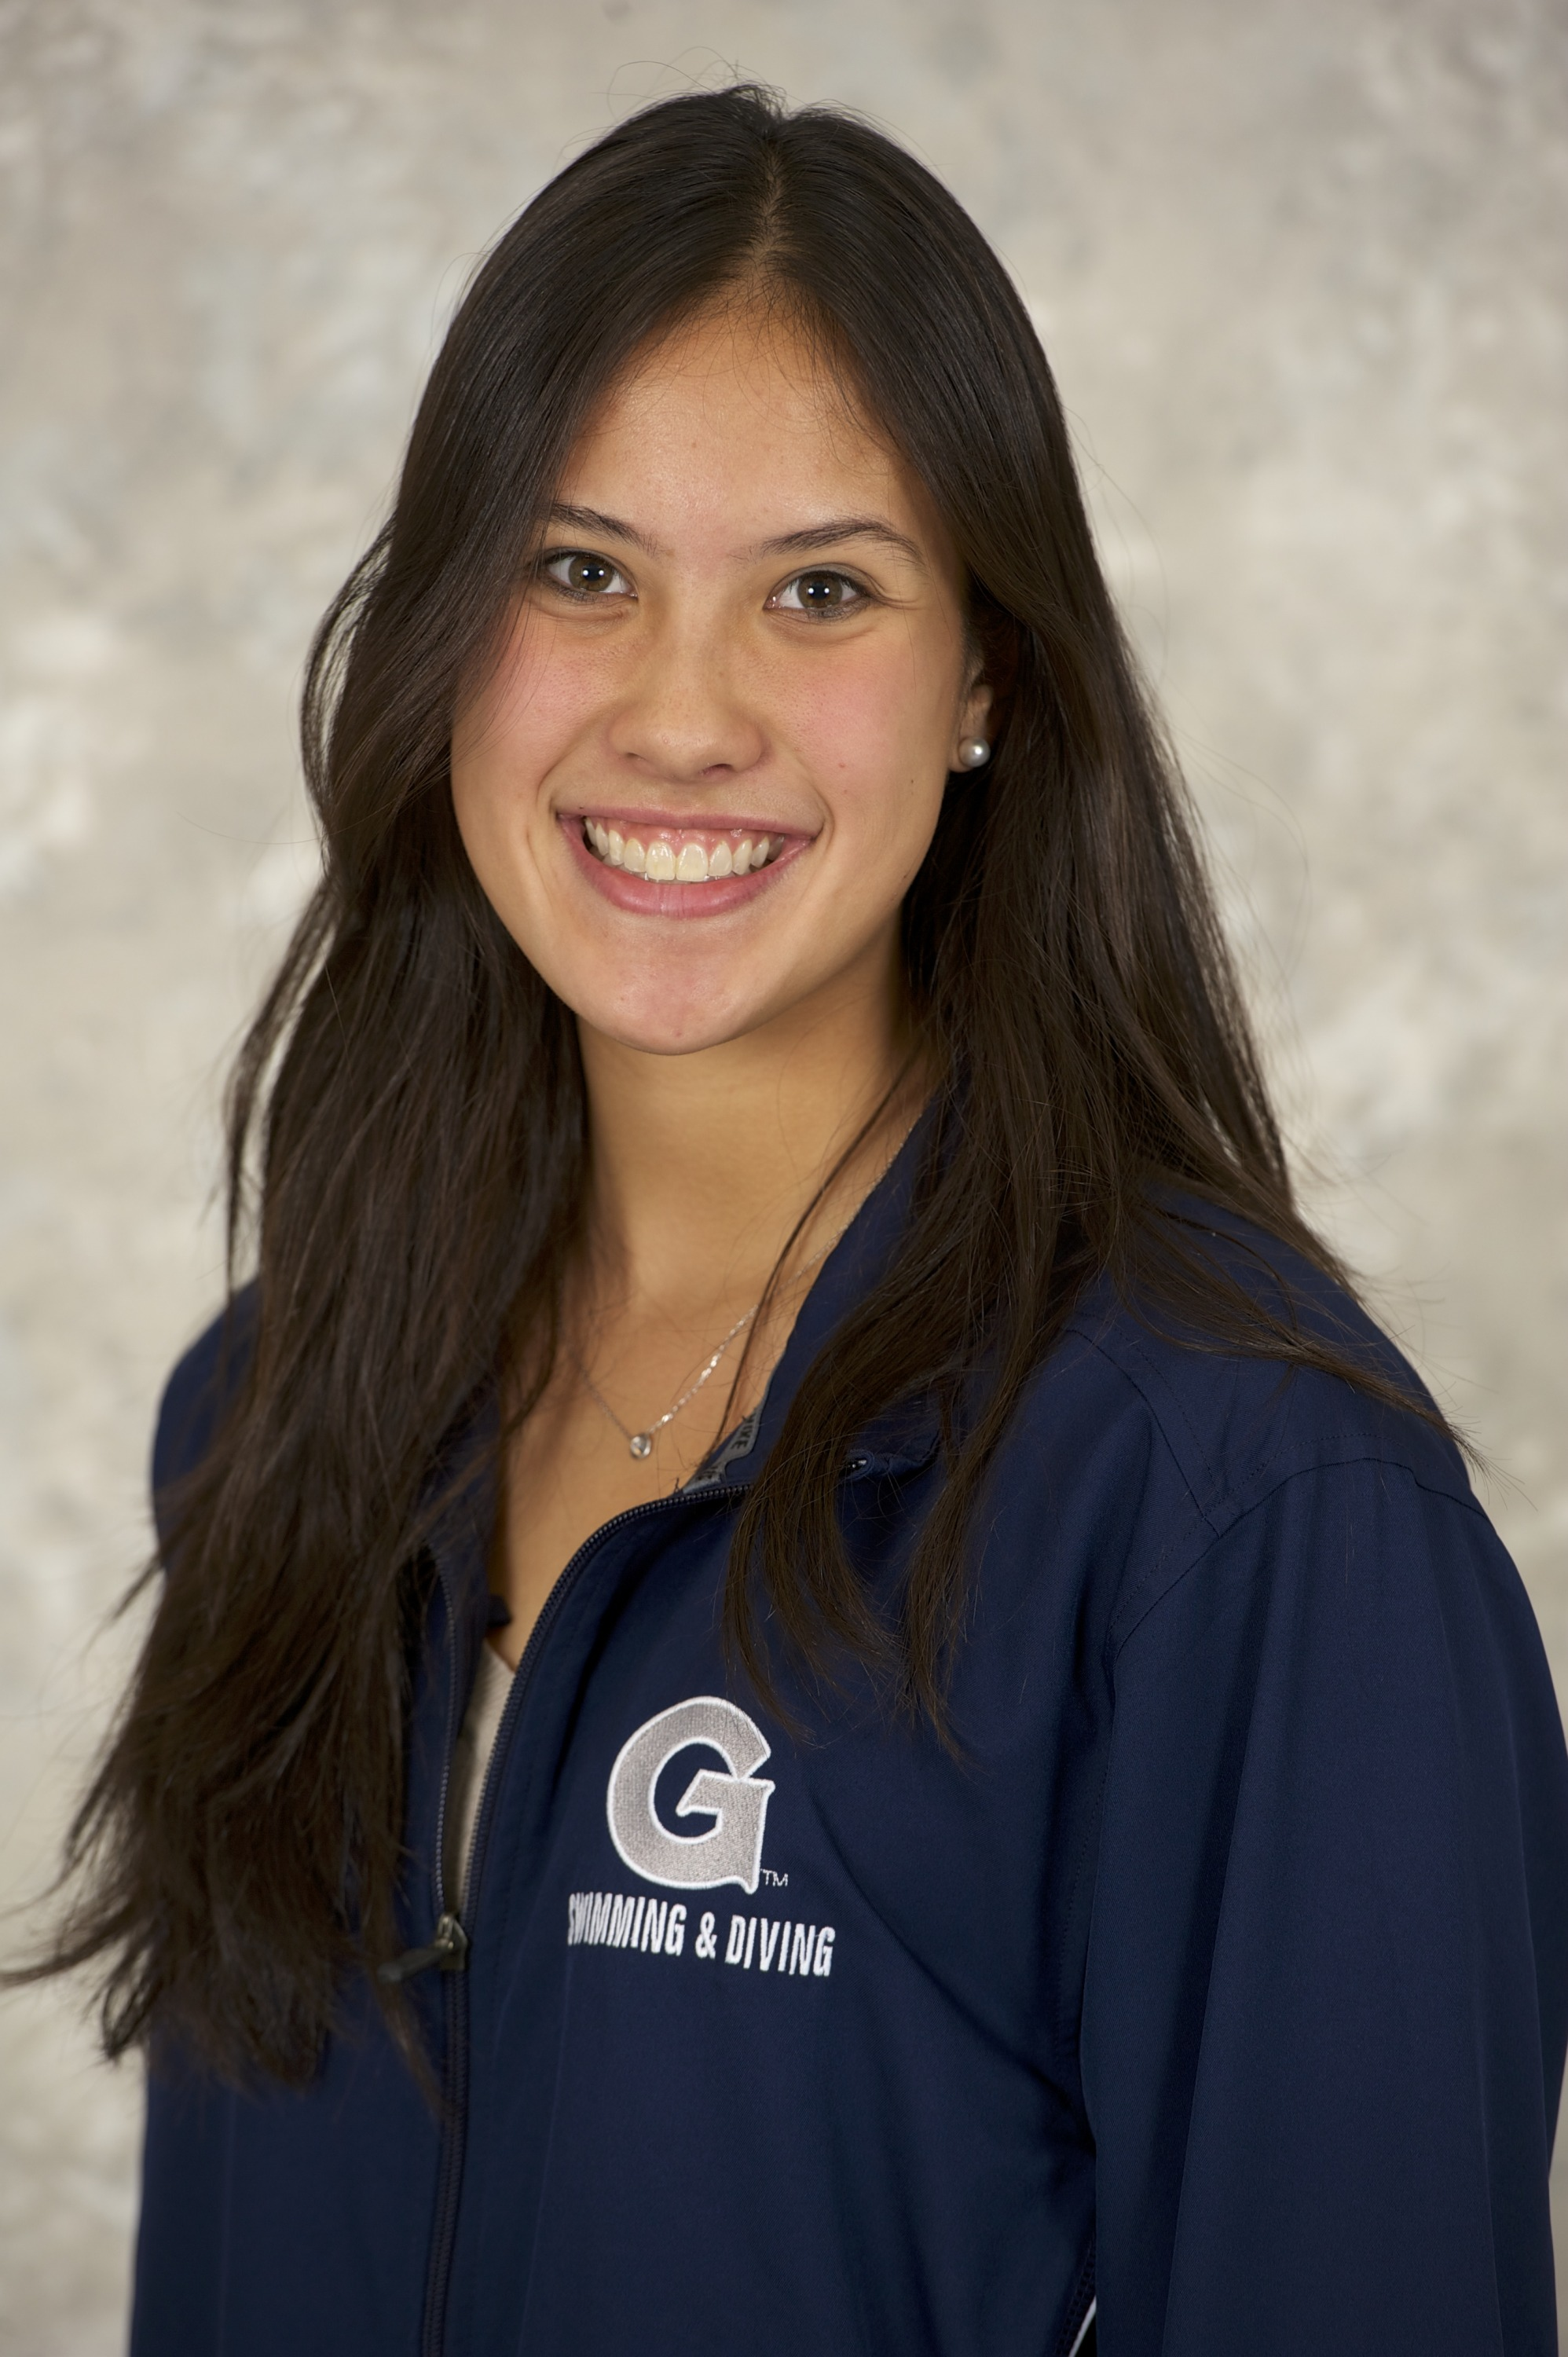 Katie Duncalf broke a pool record in the 200 yard backstroke and was part of the women's 400 yard medley relay squad.